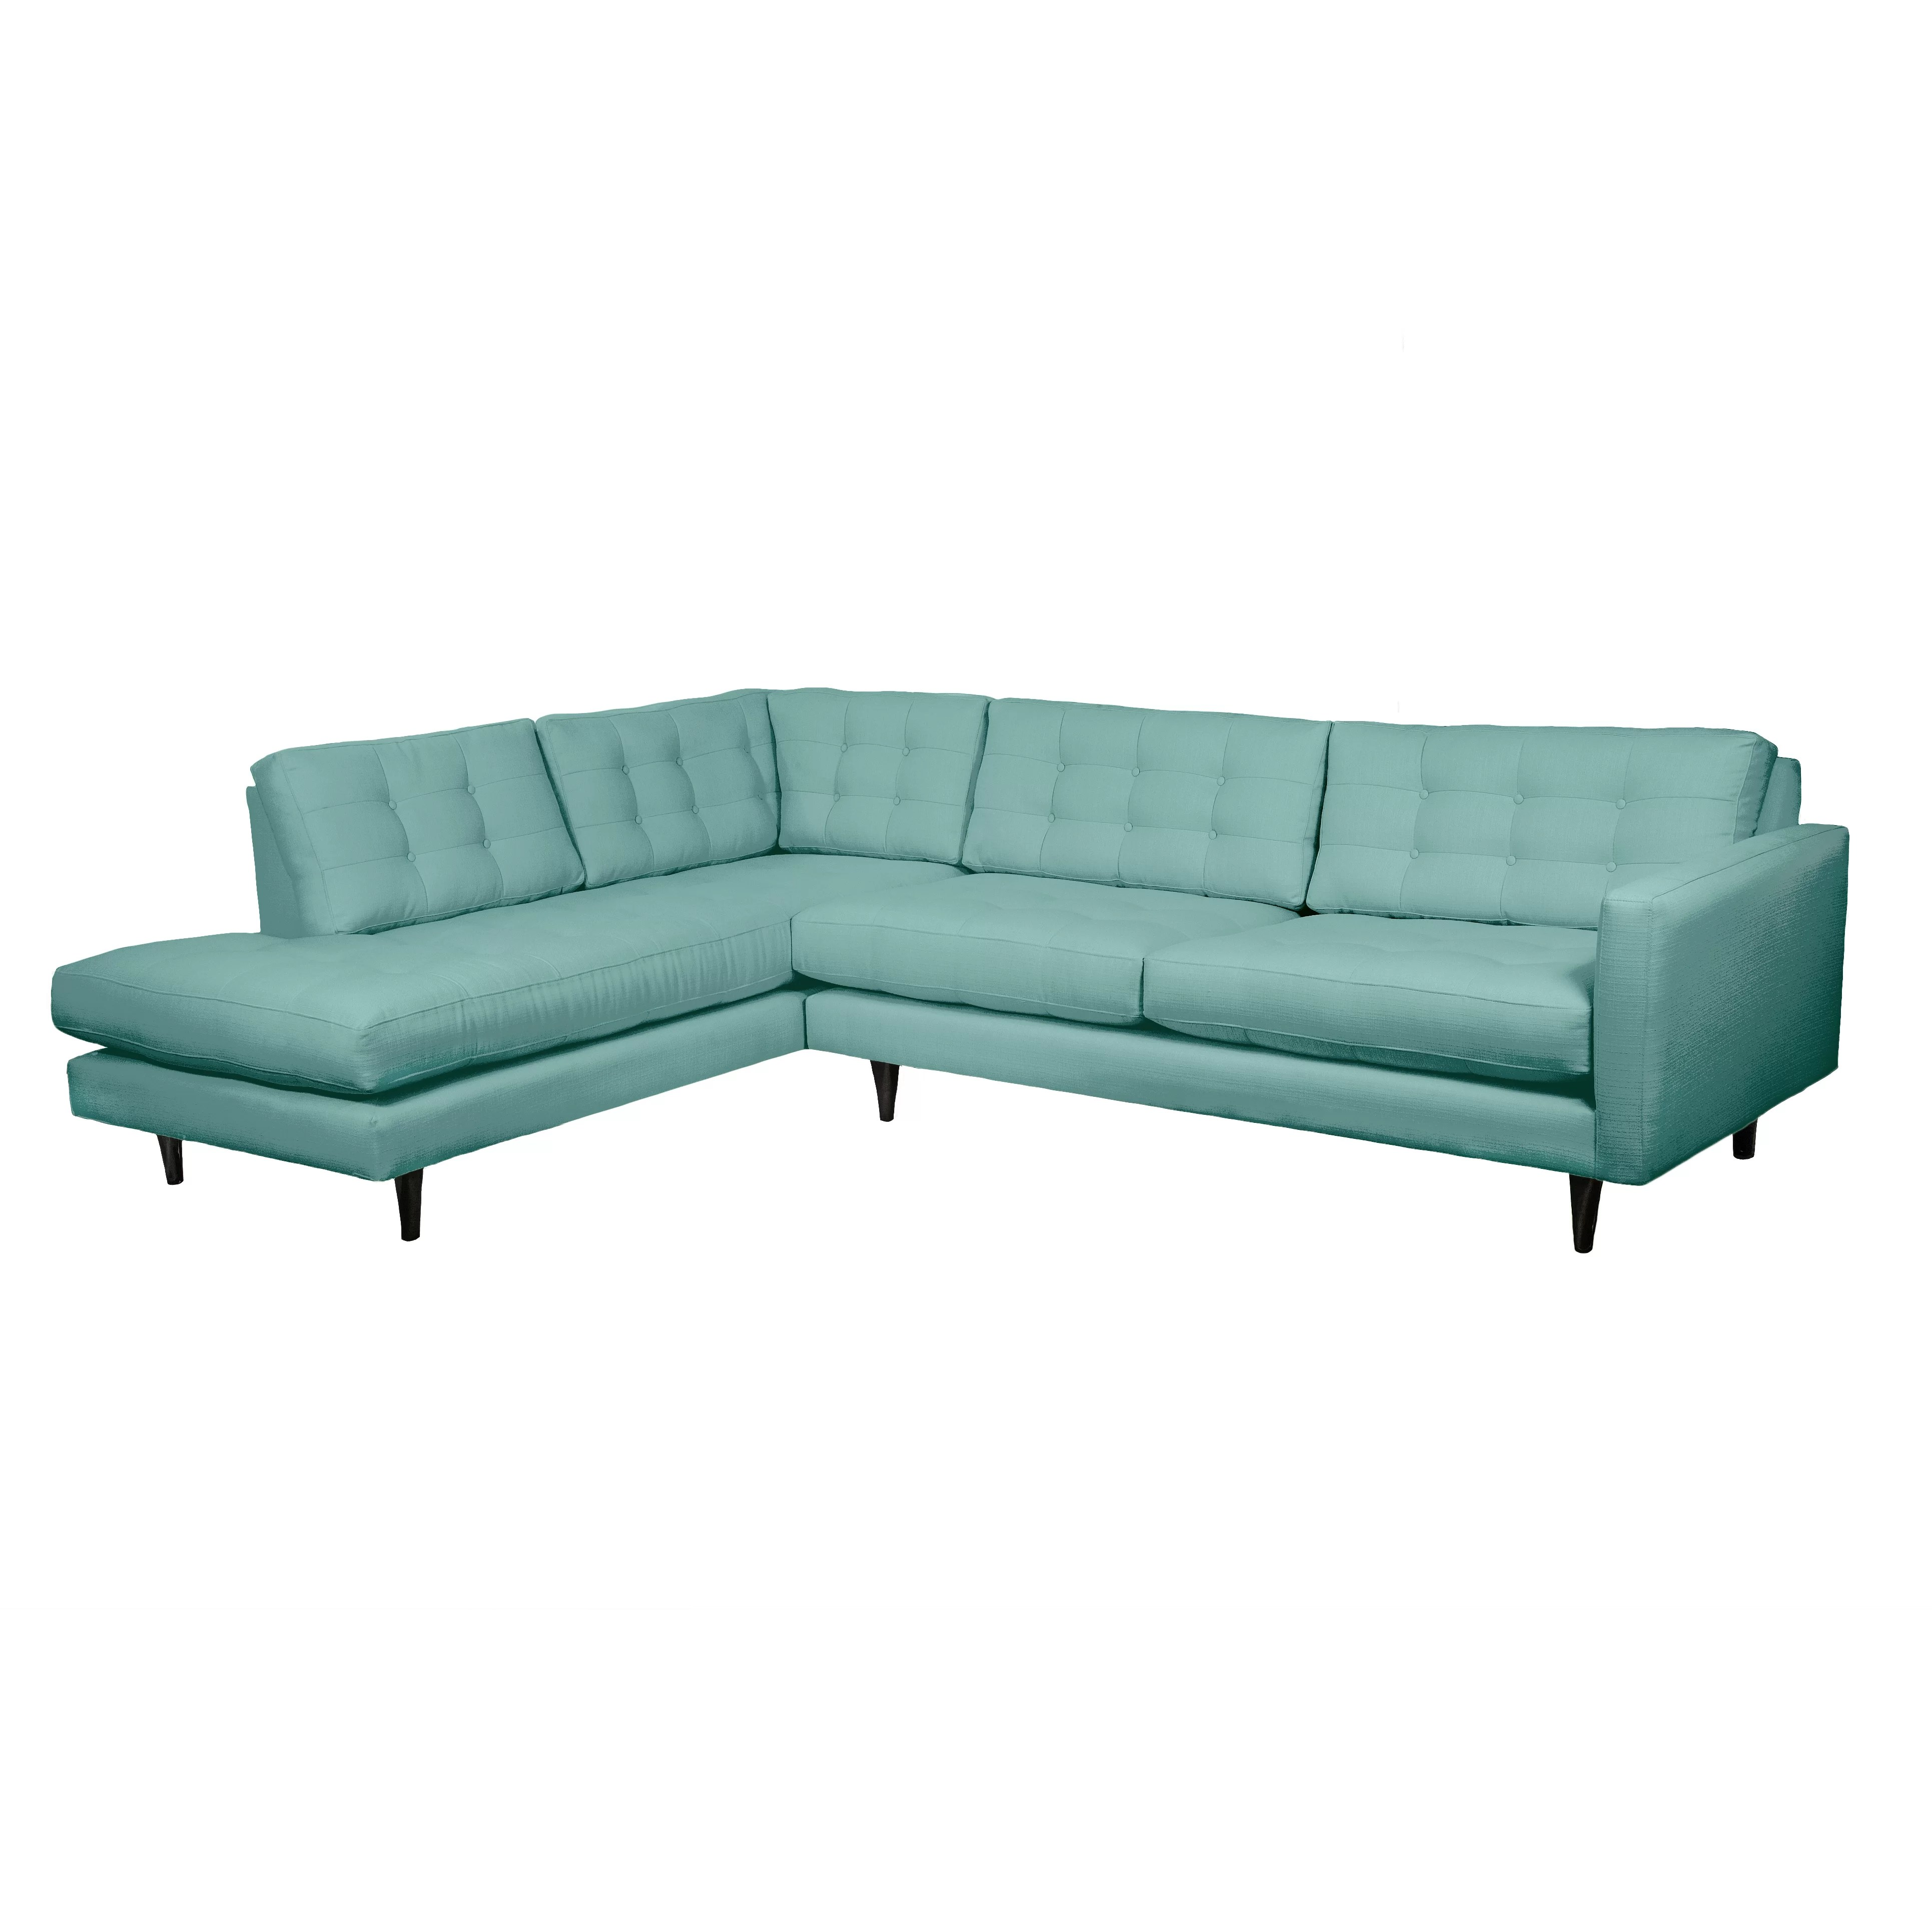 mid century modern sofa designs costco leather inspired finds from wayfair dans le